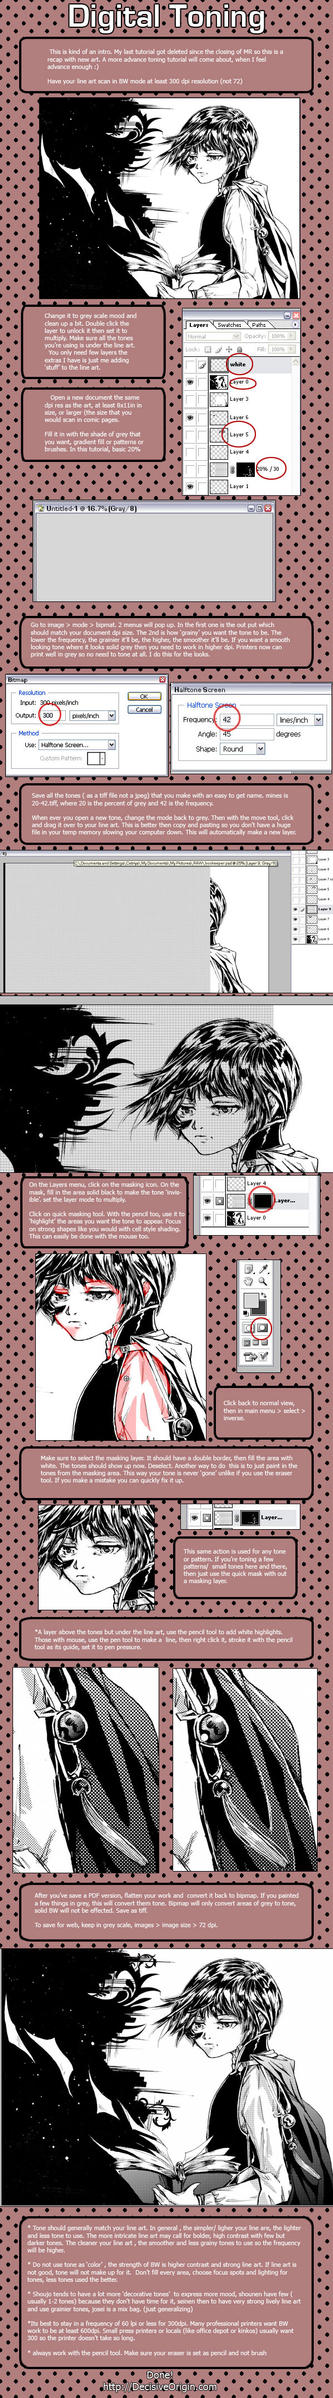 Comic screentoning tutorial by Cetriya